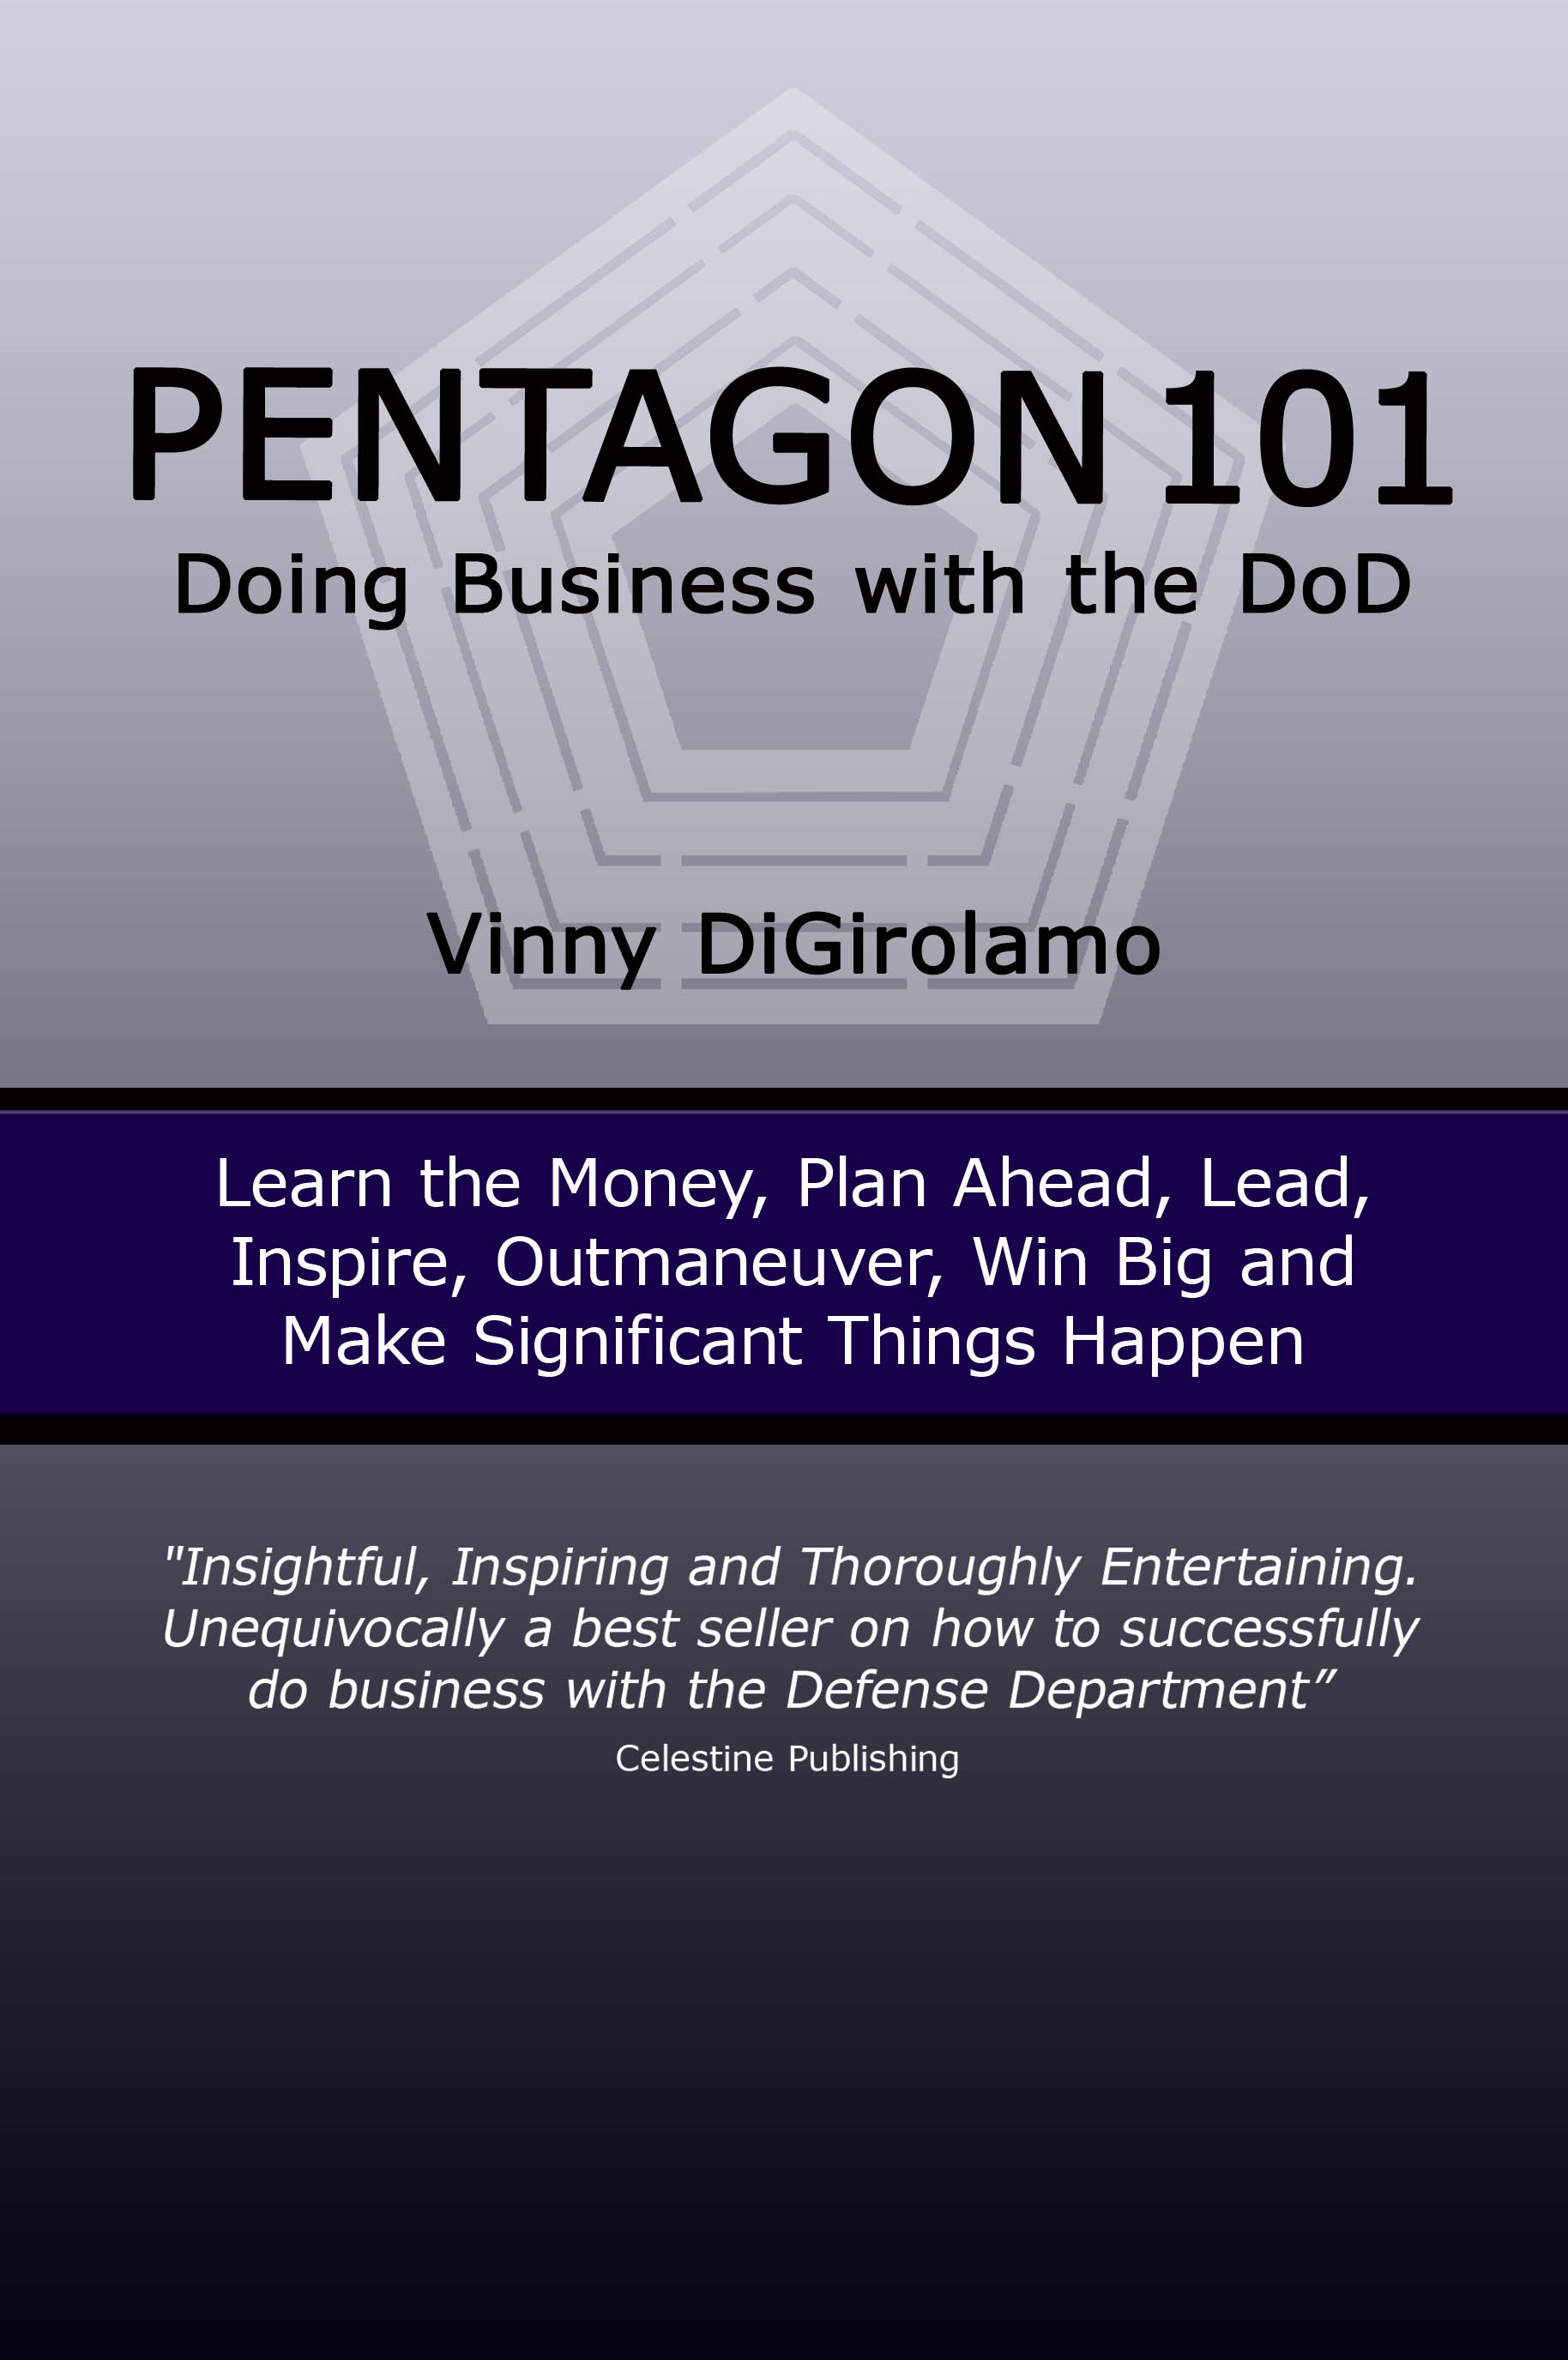 Pentagon 101: Doing Business with the DoD